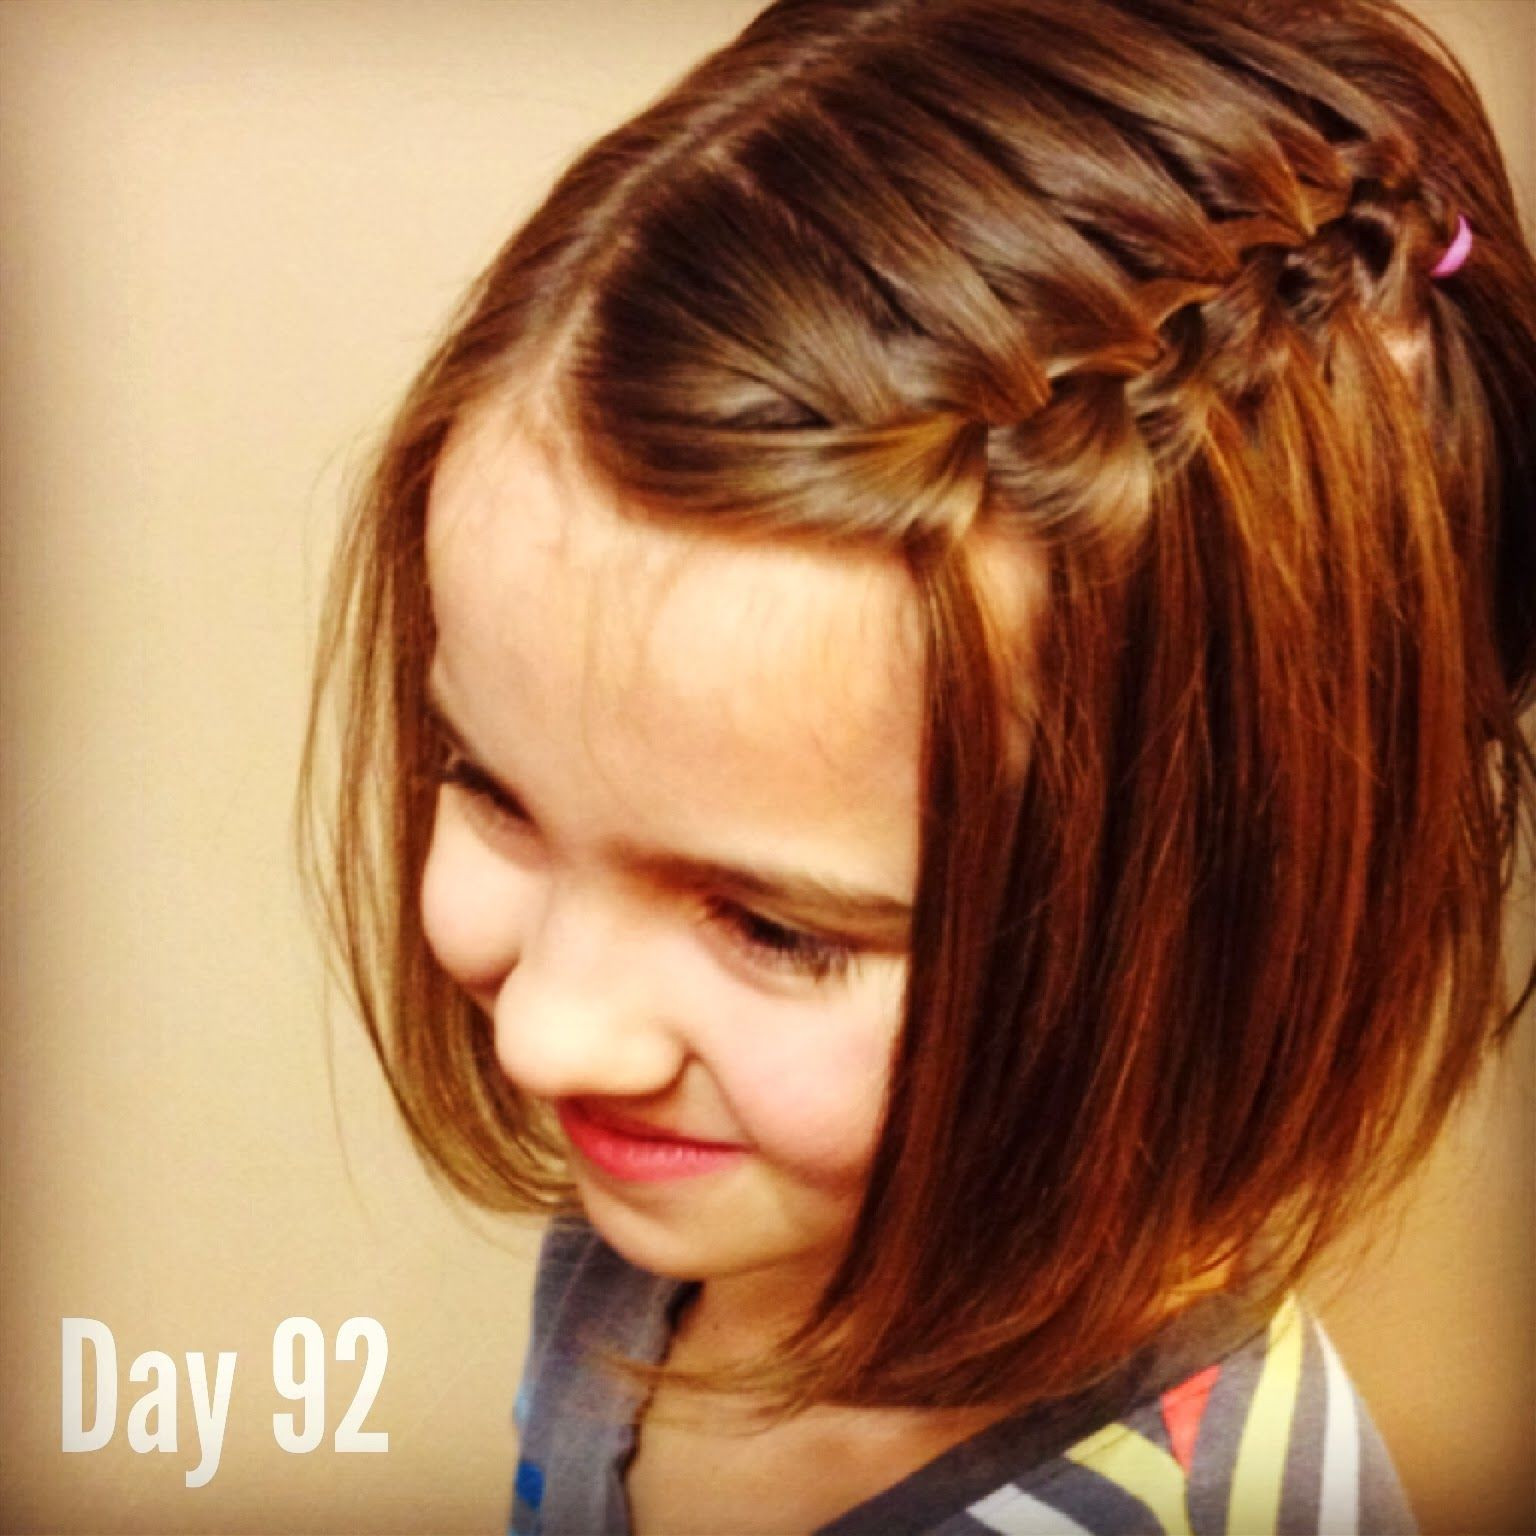 Best ideas about Girly Hairstyles For Kids . Save or Pin Girly Do Hairstyles By Jenn Week 21 Now.